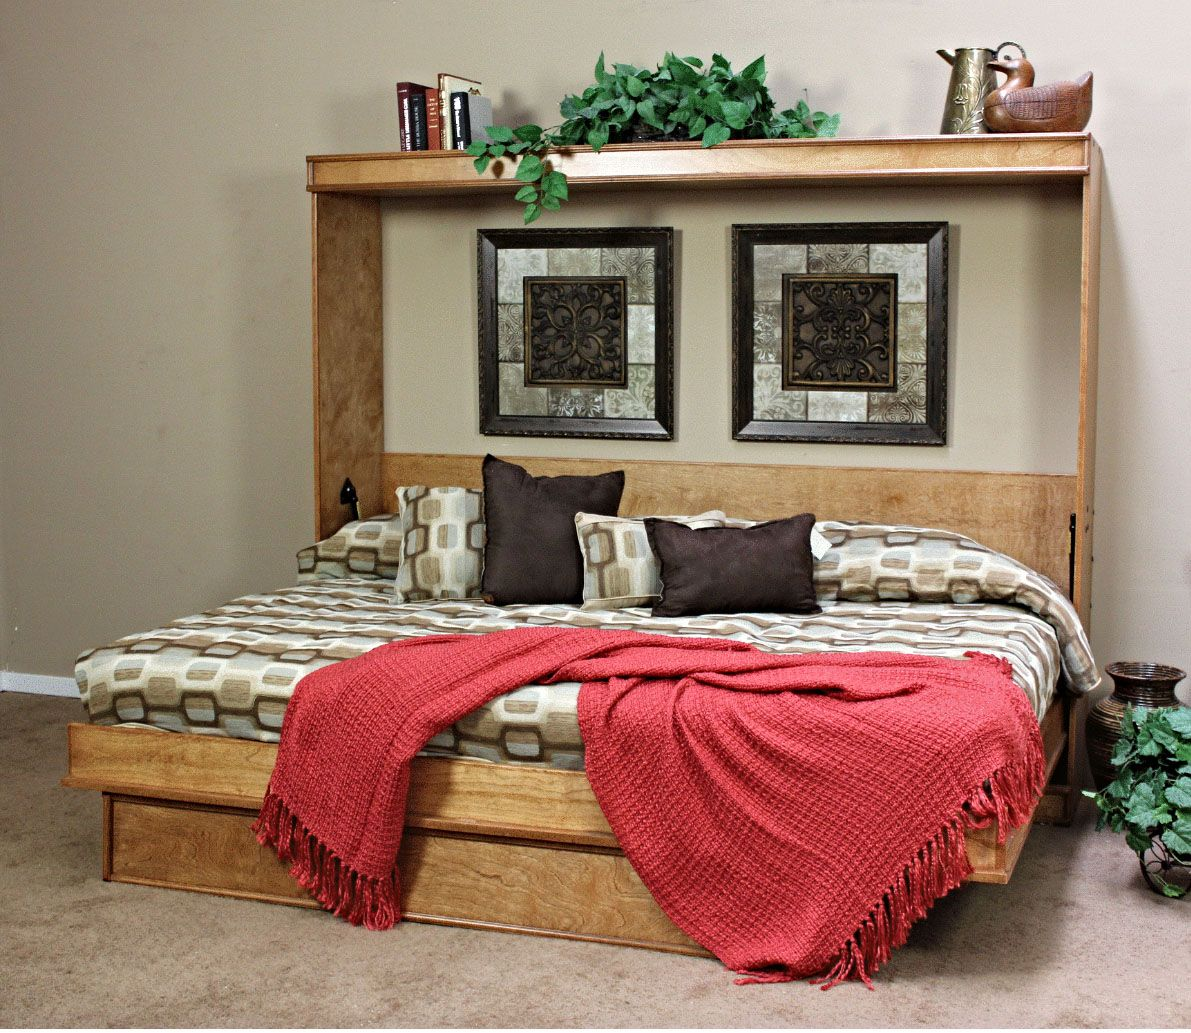 portola birch horizontal queen size wall bed by wallbeds on wall beds id=88025